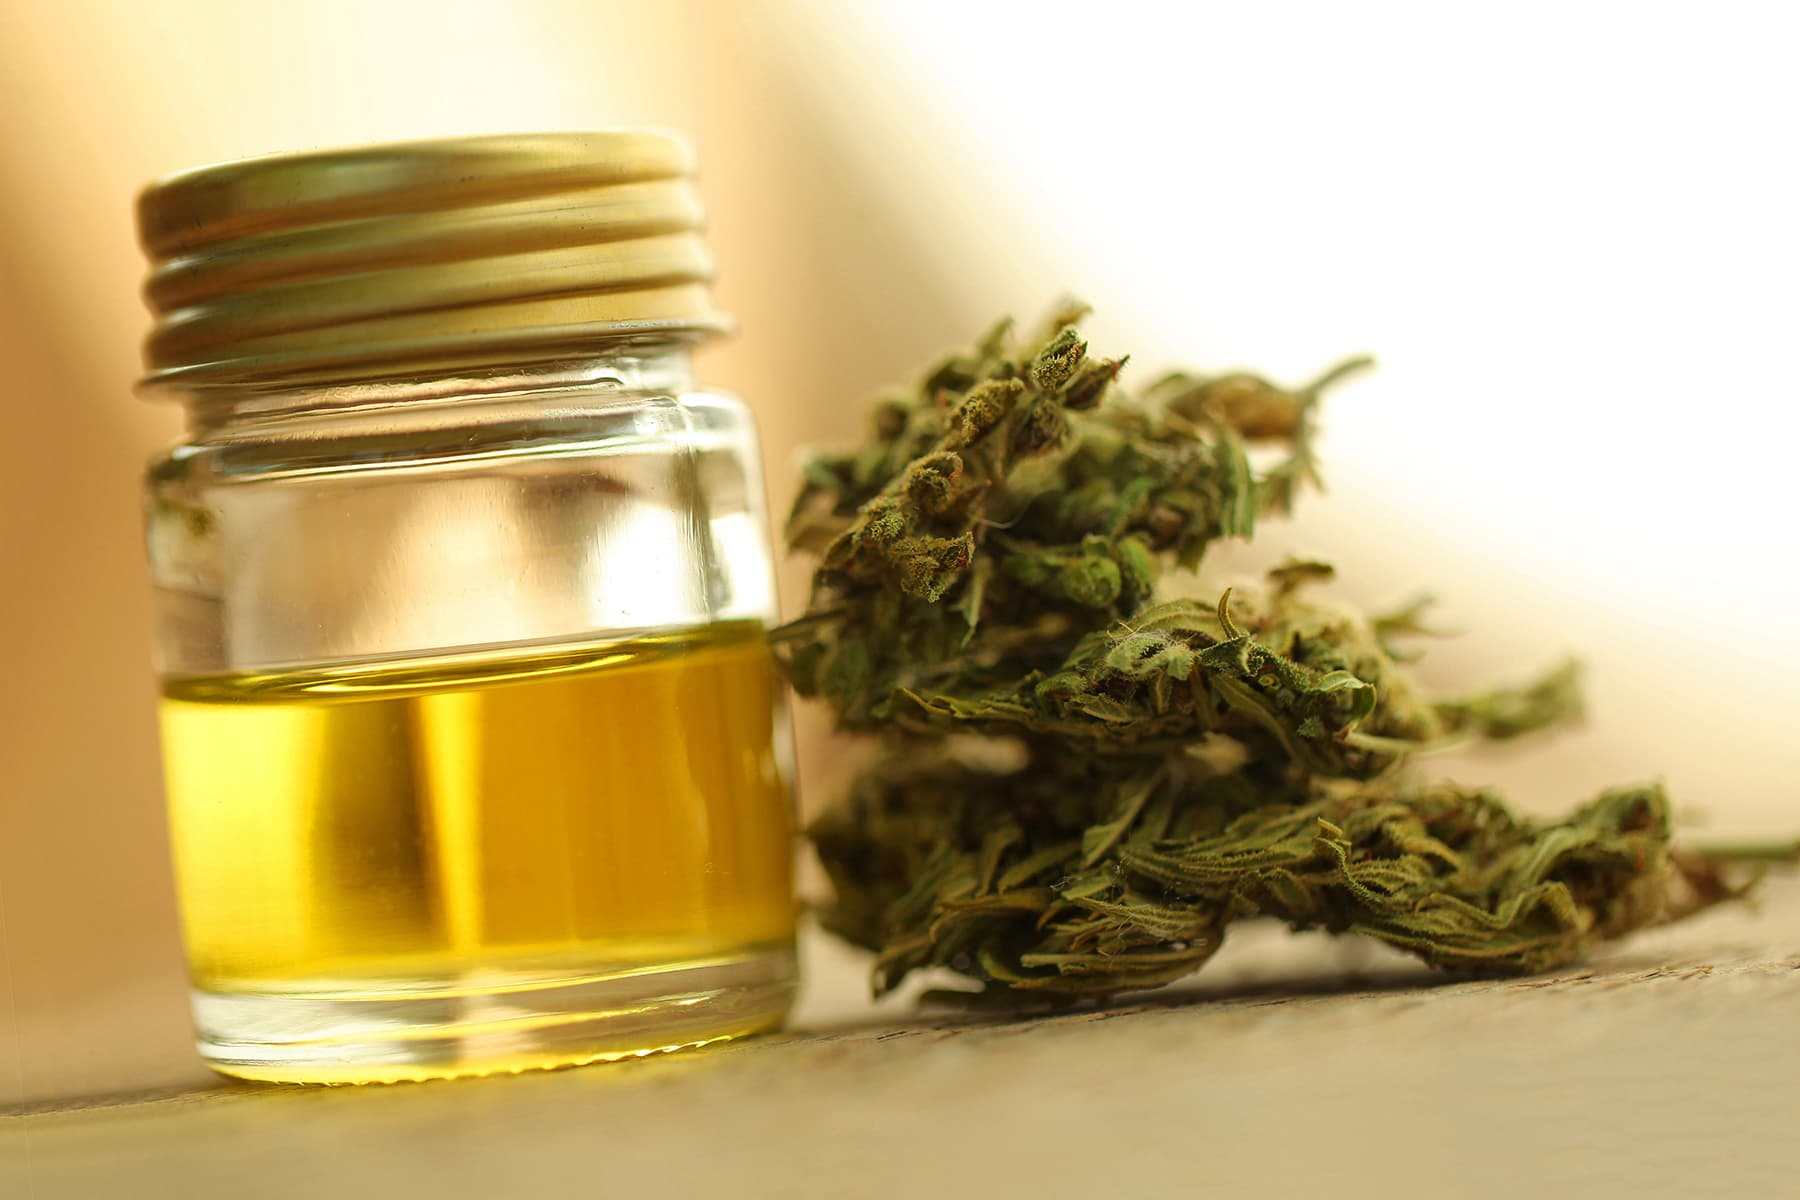 Slideshow: All About CBD Oil